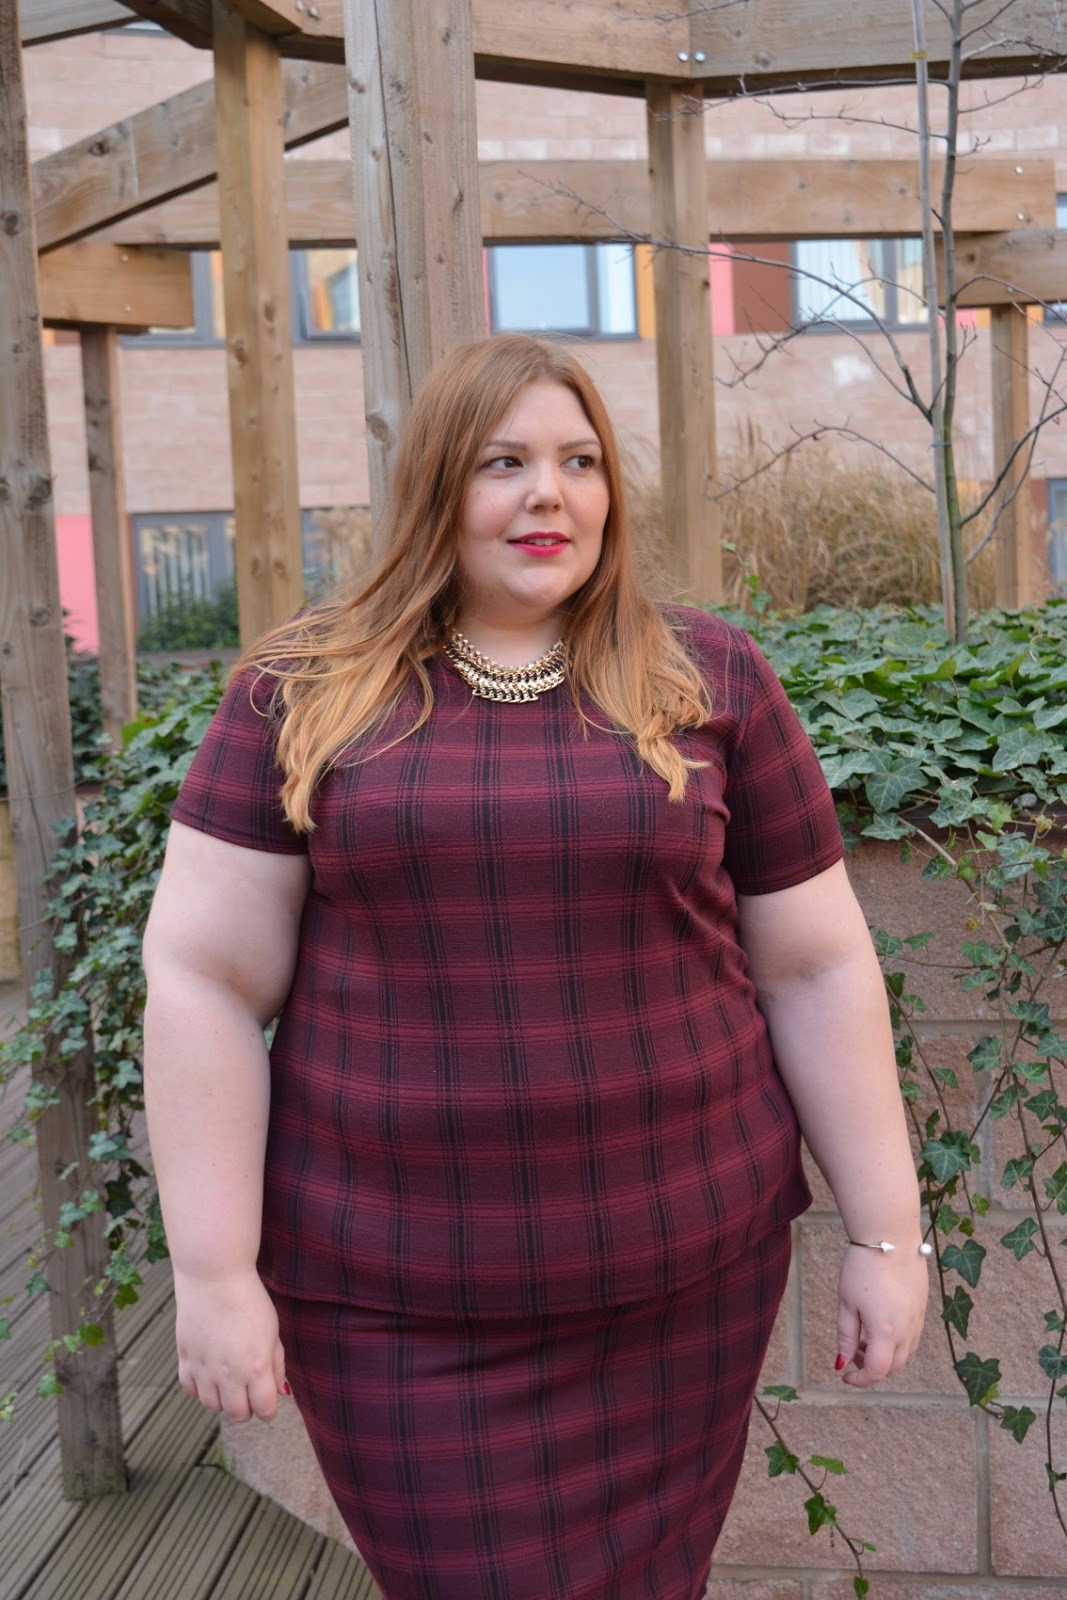 richardton bbw dating site Large and lovely is a bbw dating service with online bbw dating personals for plus size singles the bbw big beautiful woman the bhm big handsome man and their admirers with sincere personal ads currently listed in our date finder search.